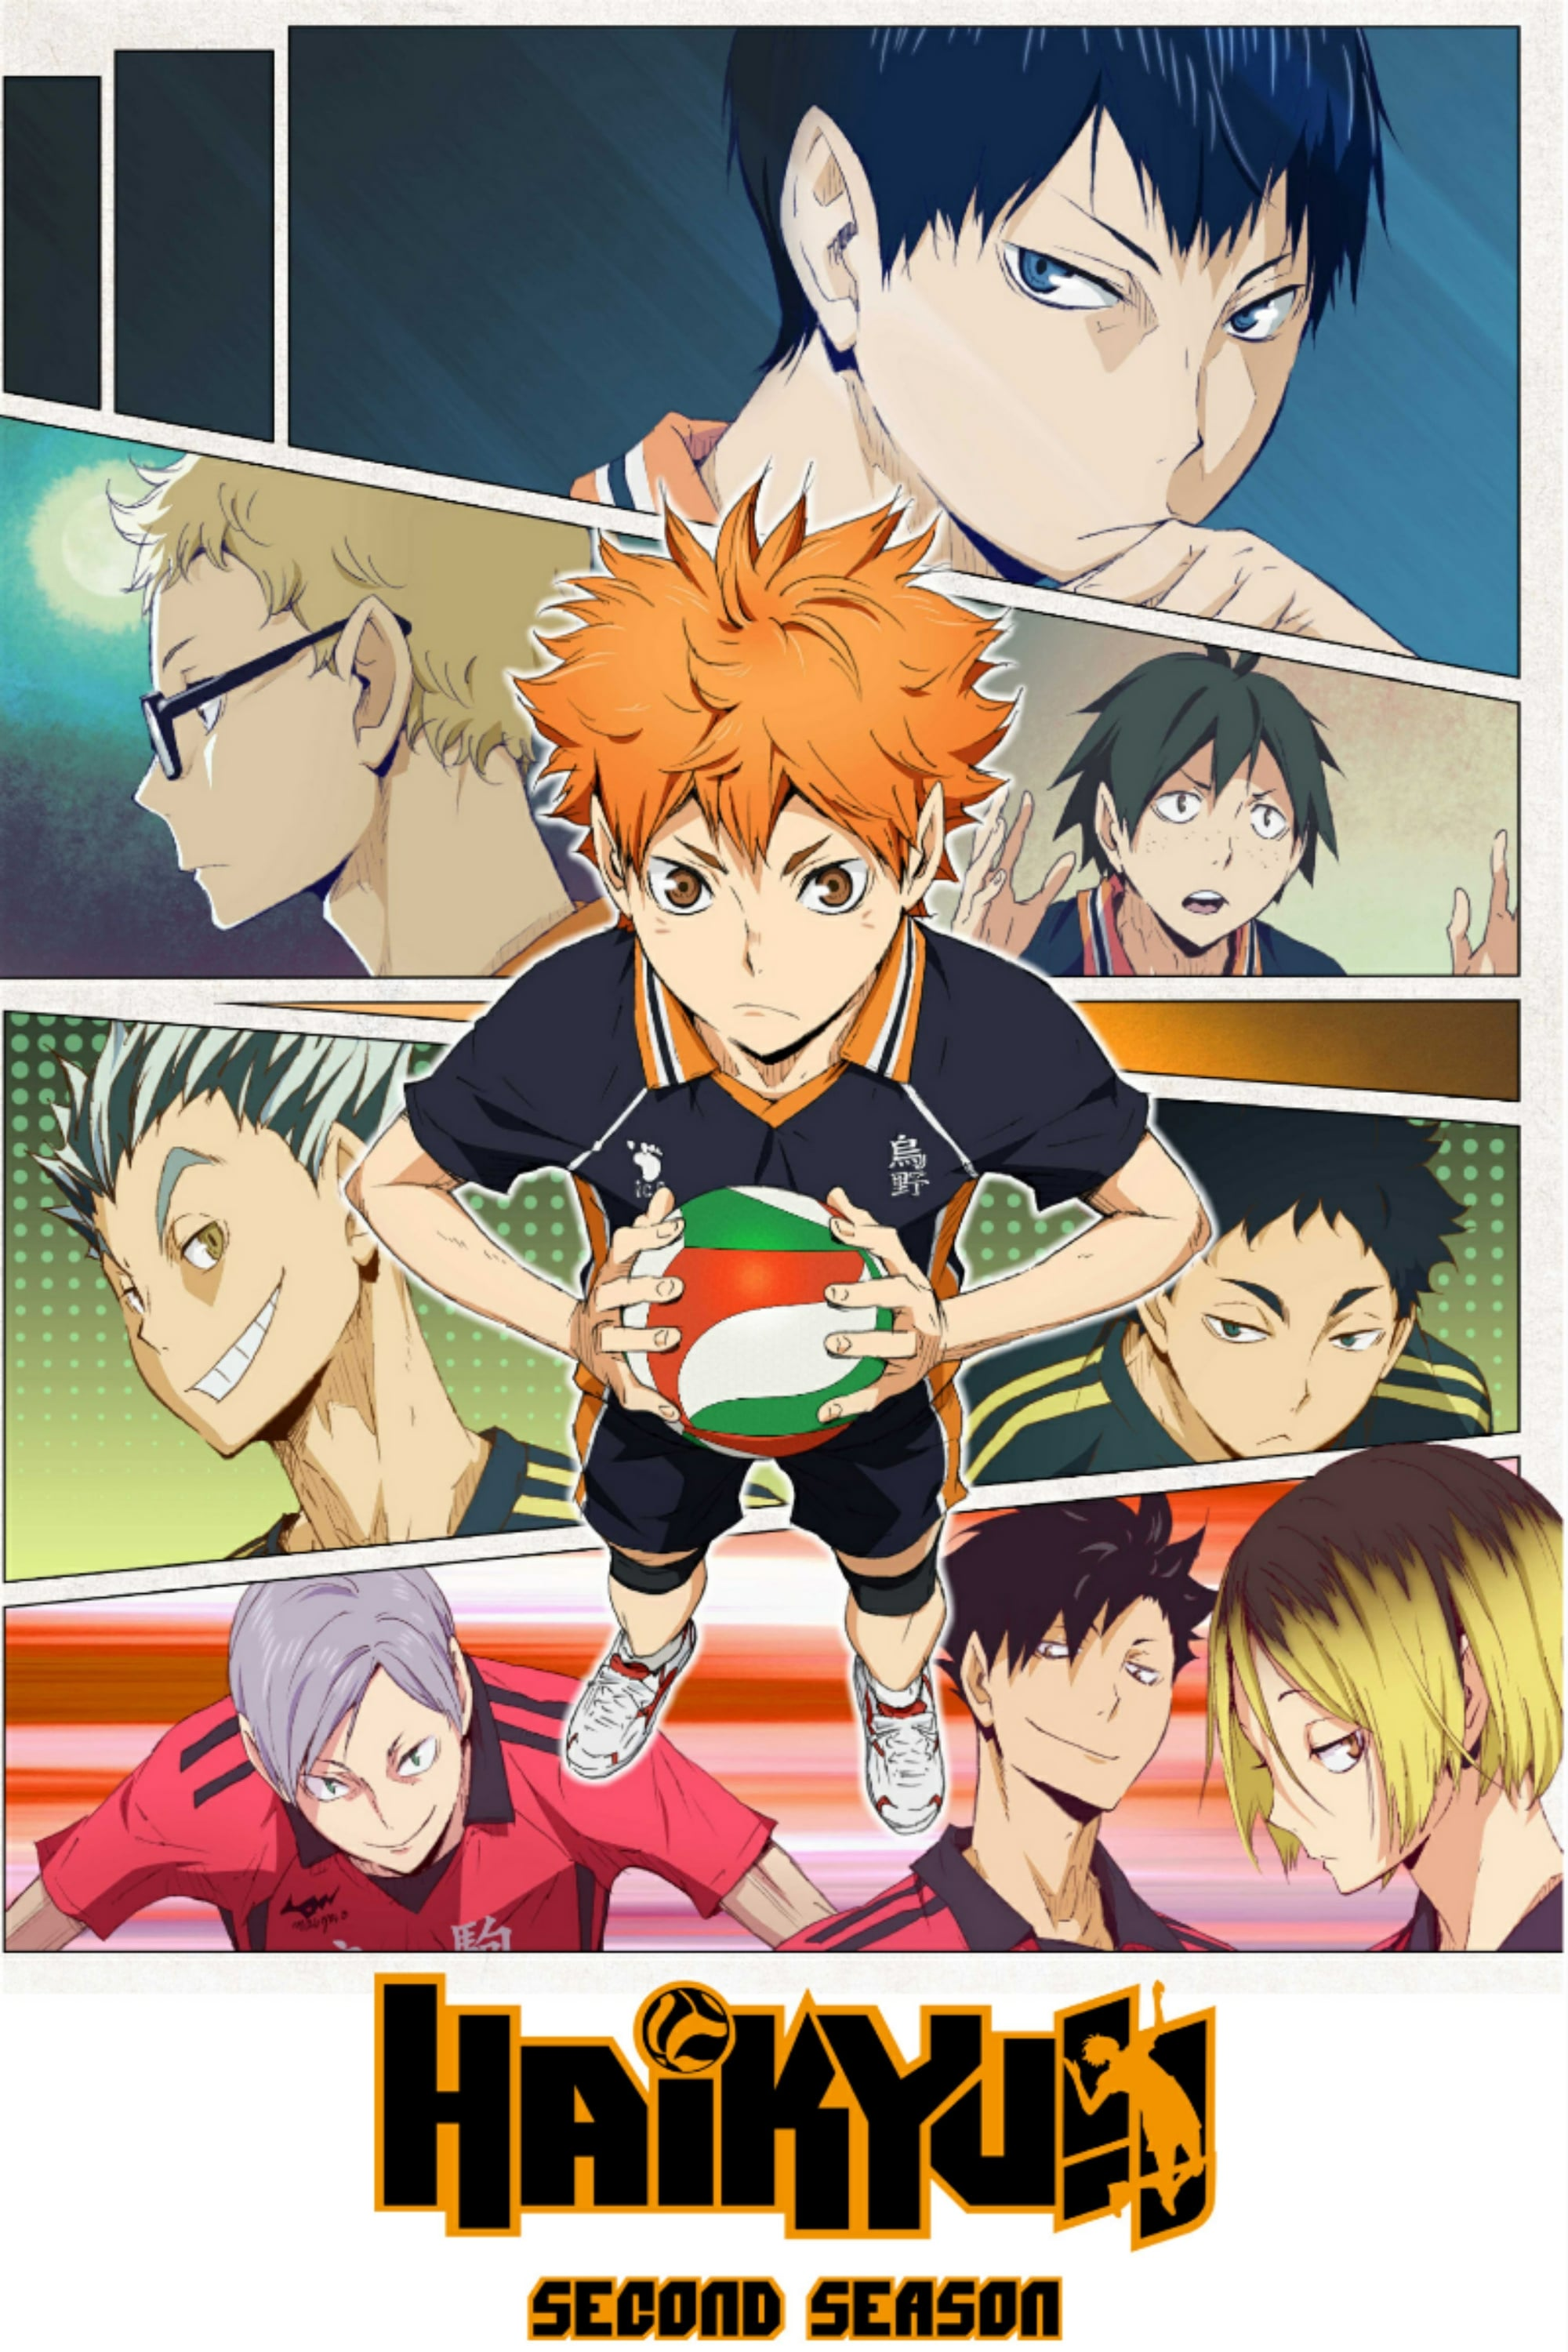 Haikyu!! Season 2